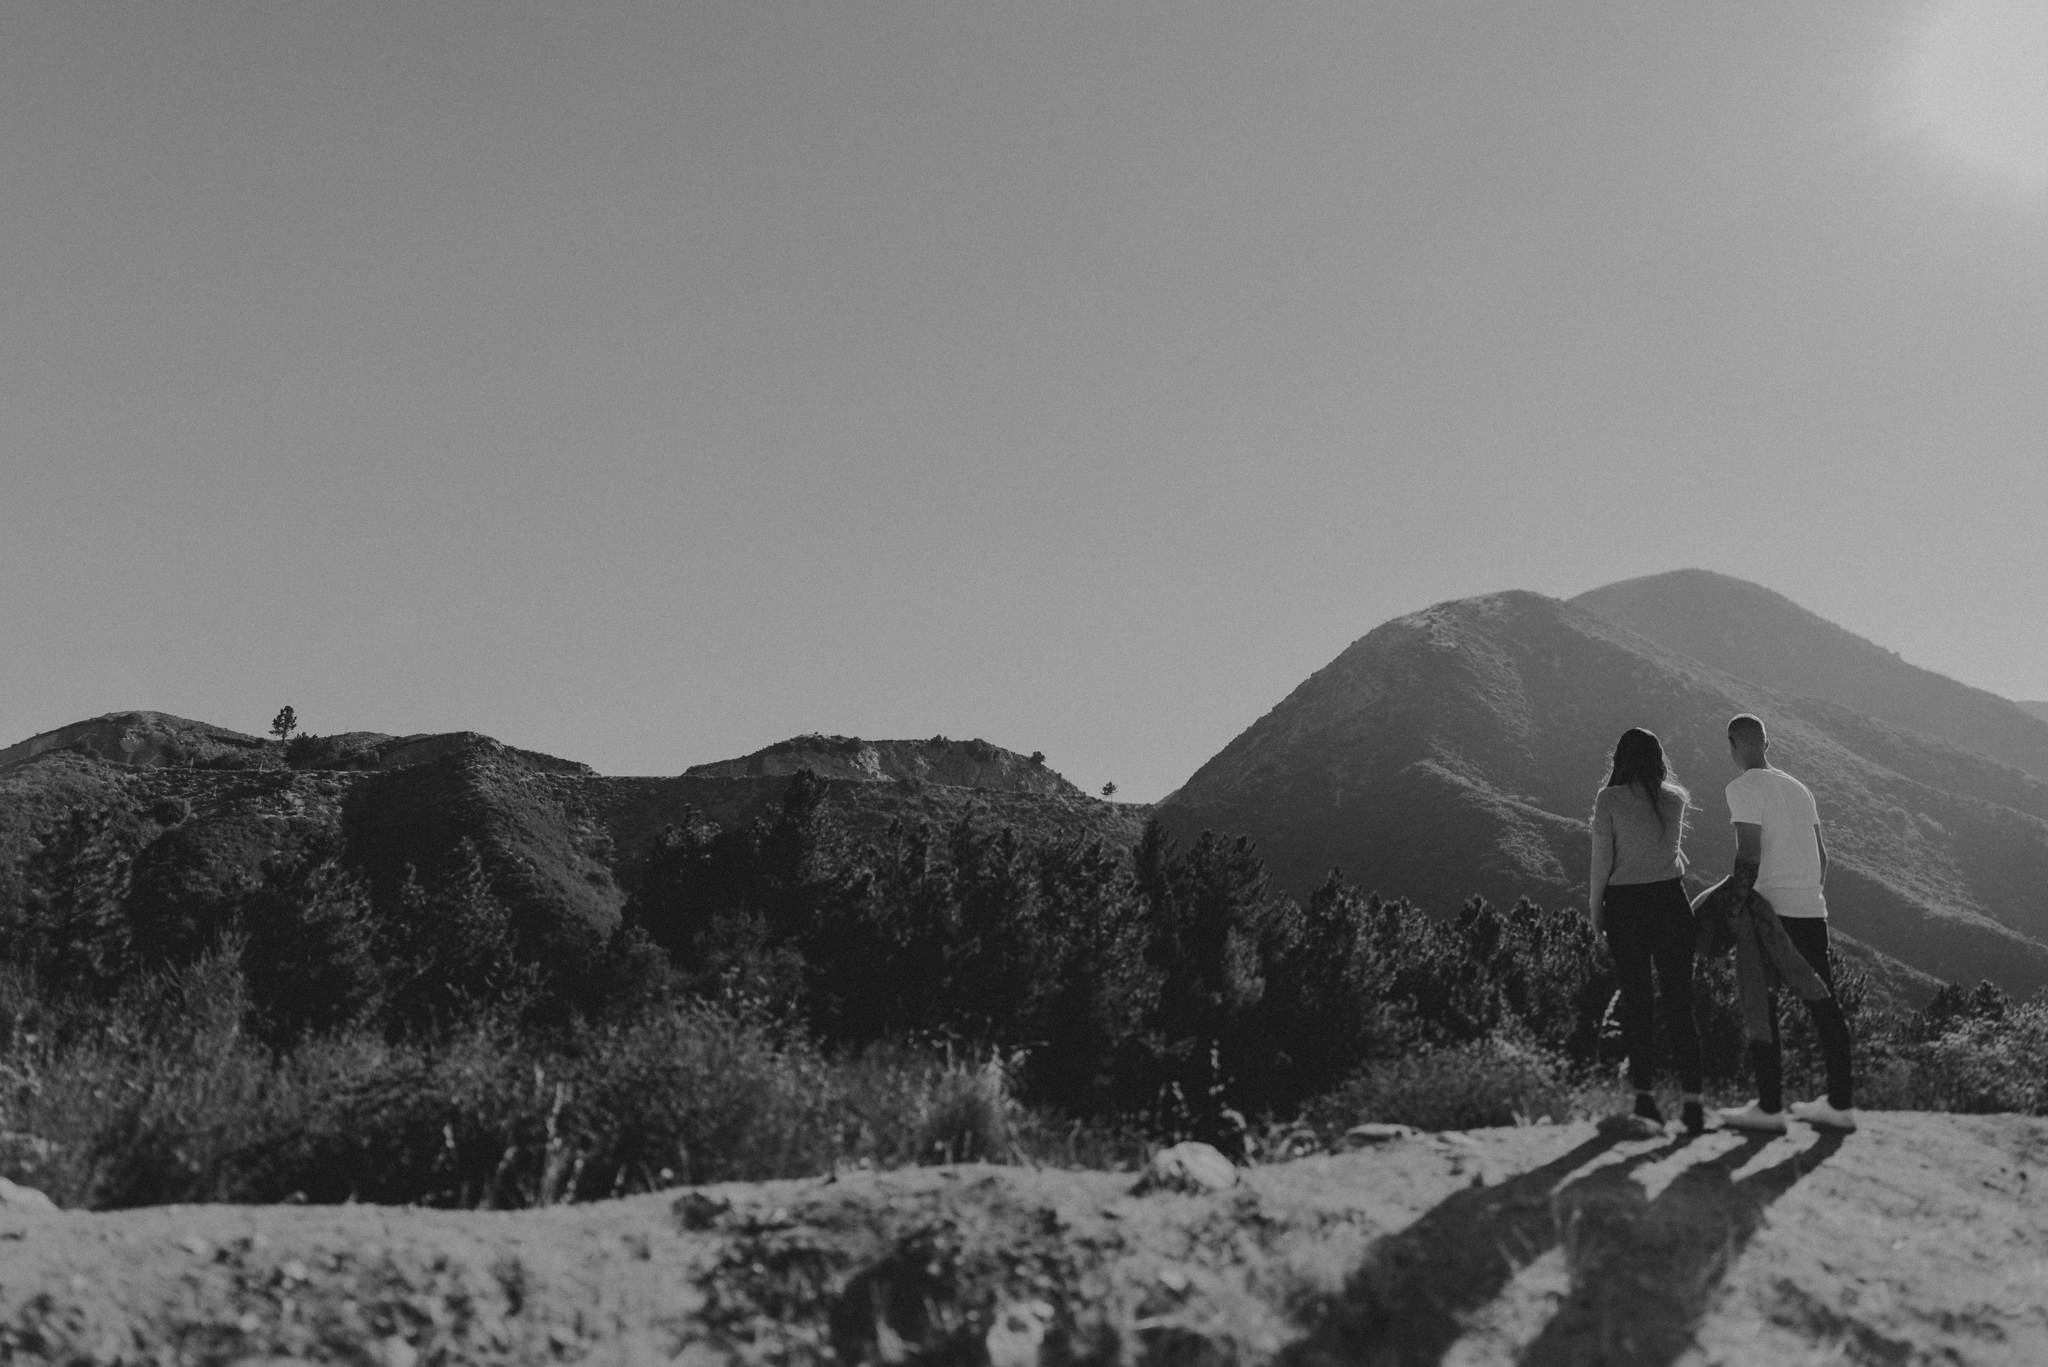 Isaiah + Taylor Photography - Los Angeles Forest Engagement, Laid-back Wedding Photographer-001.jpg